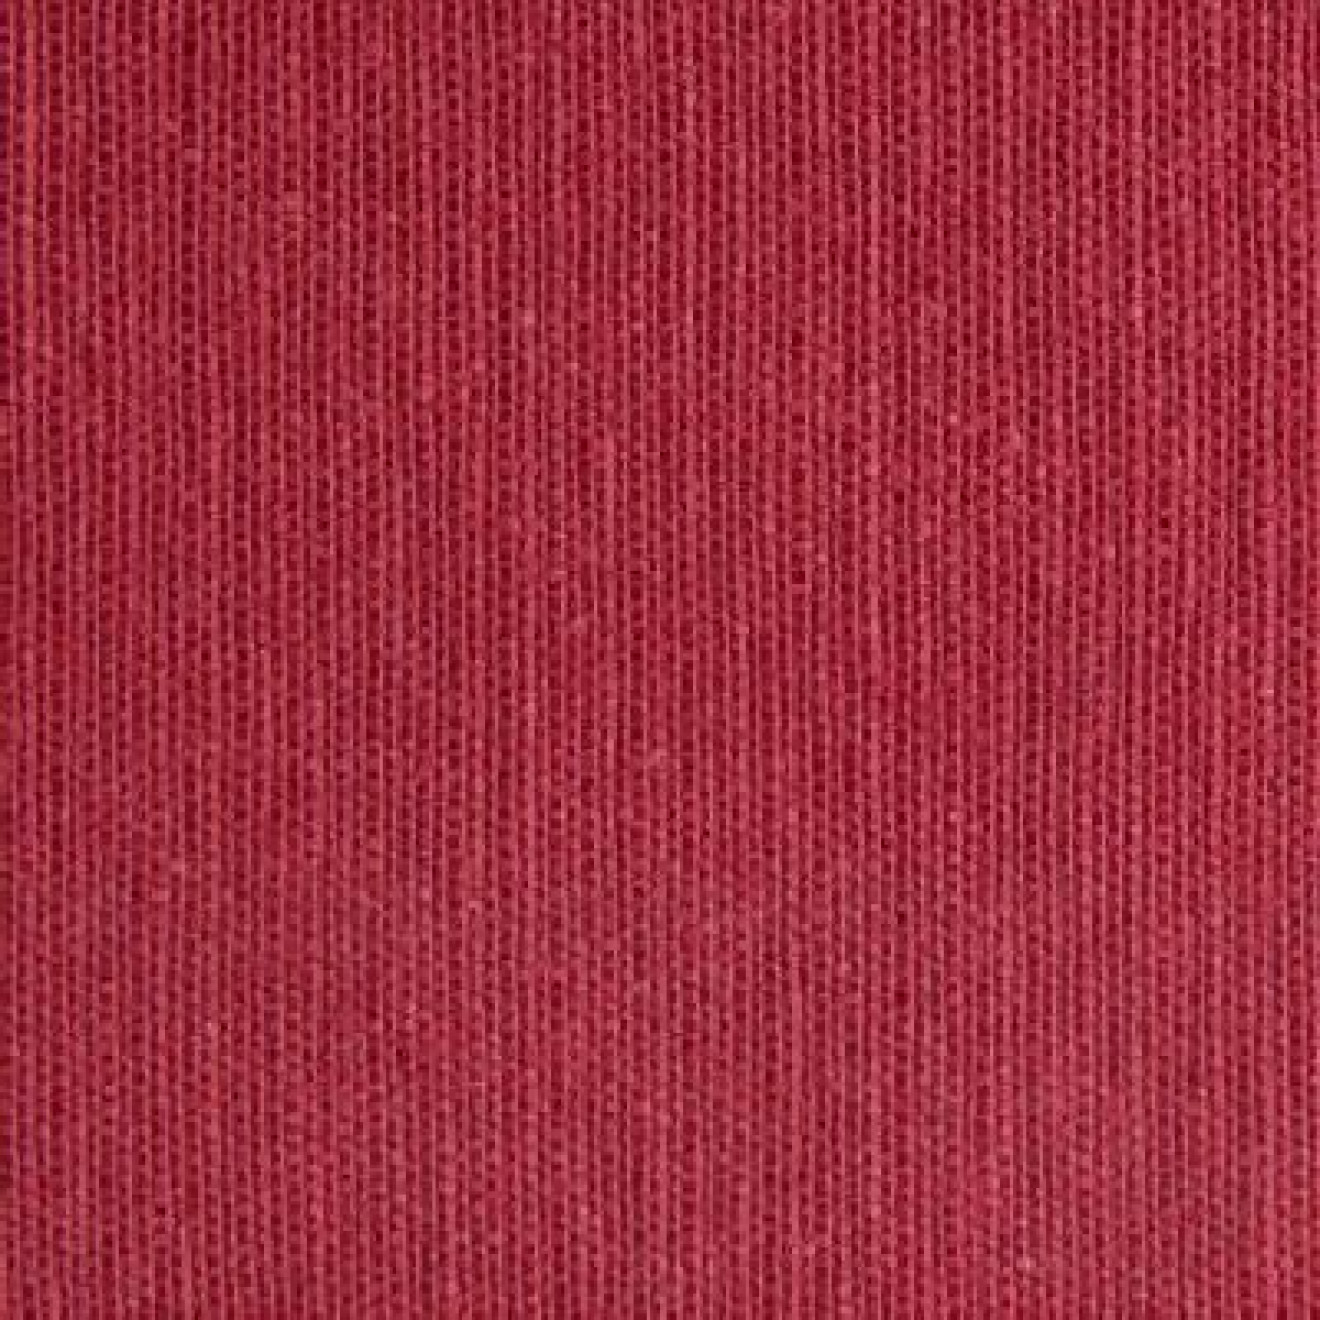 Dreieck - Acrylstoff Loneta Color 133